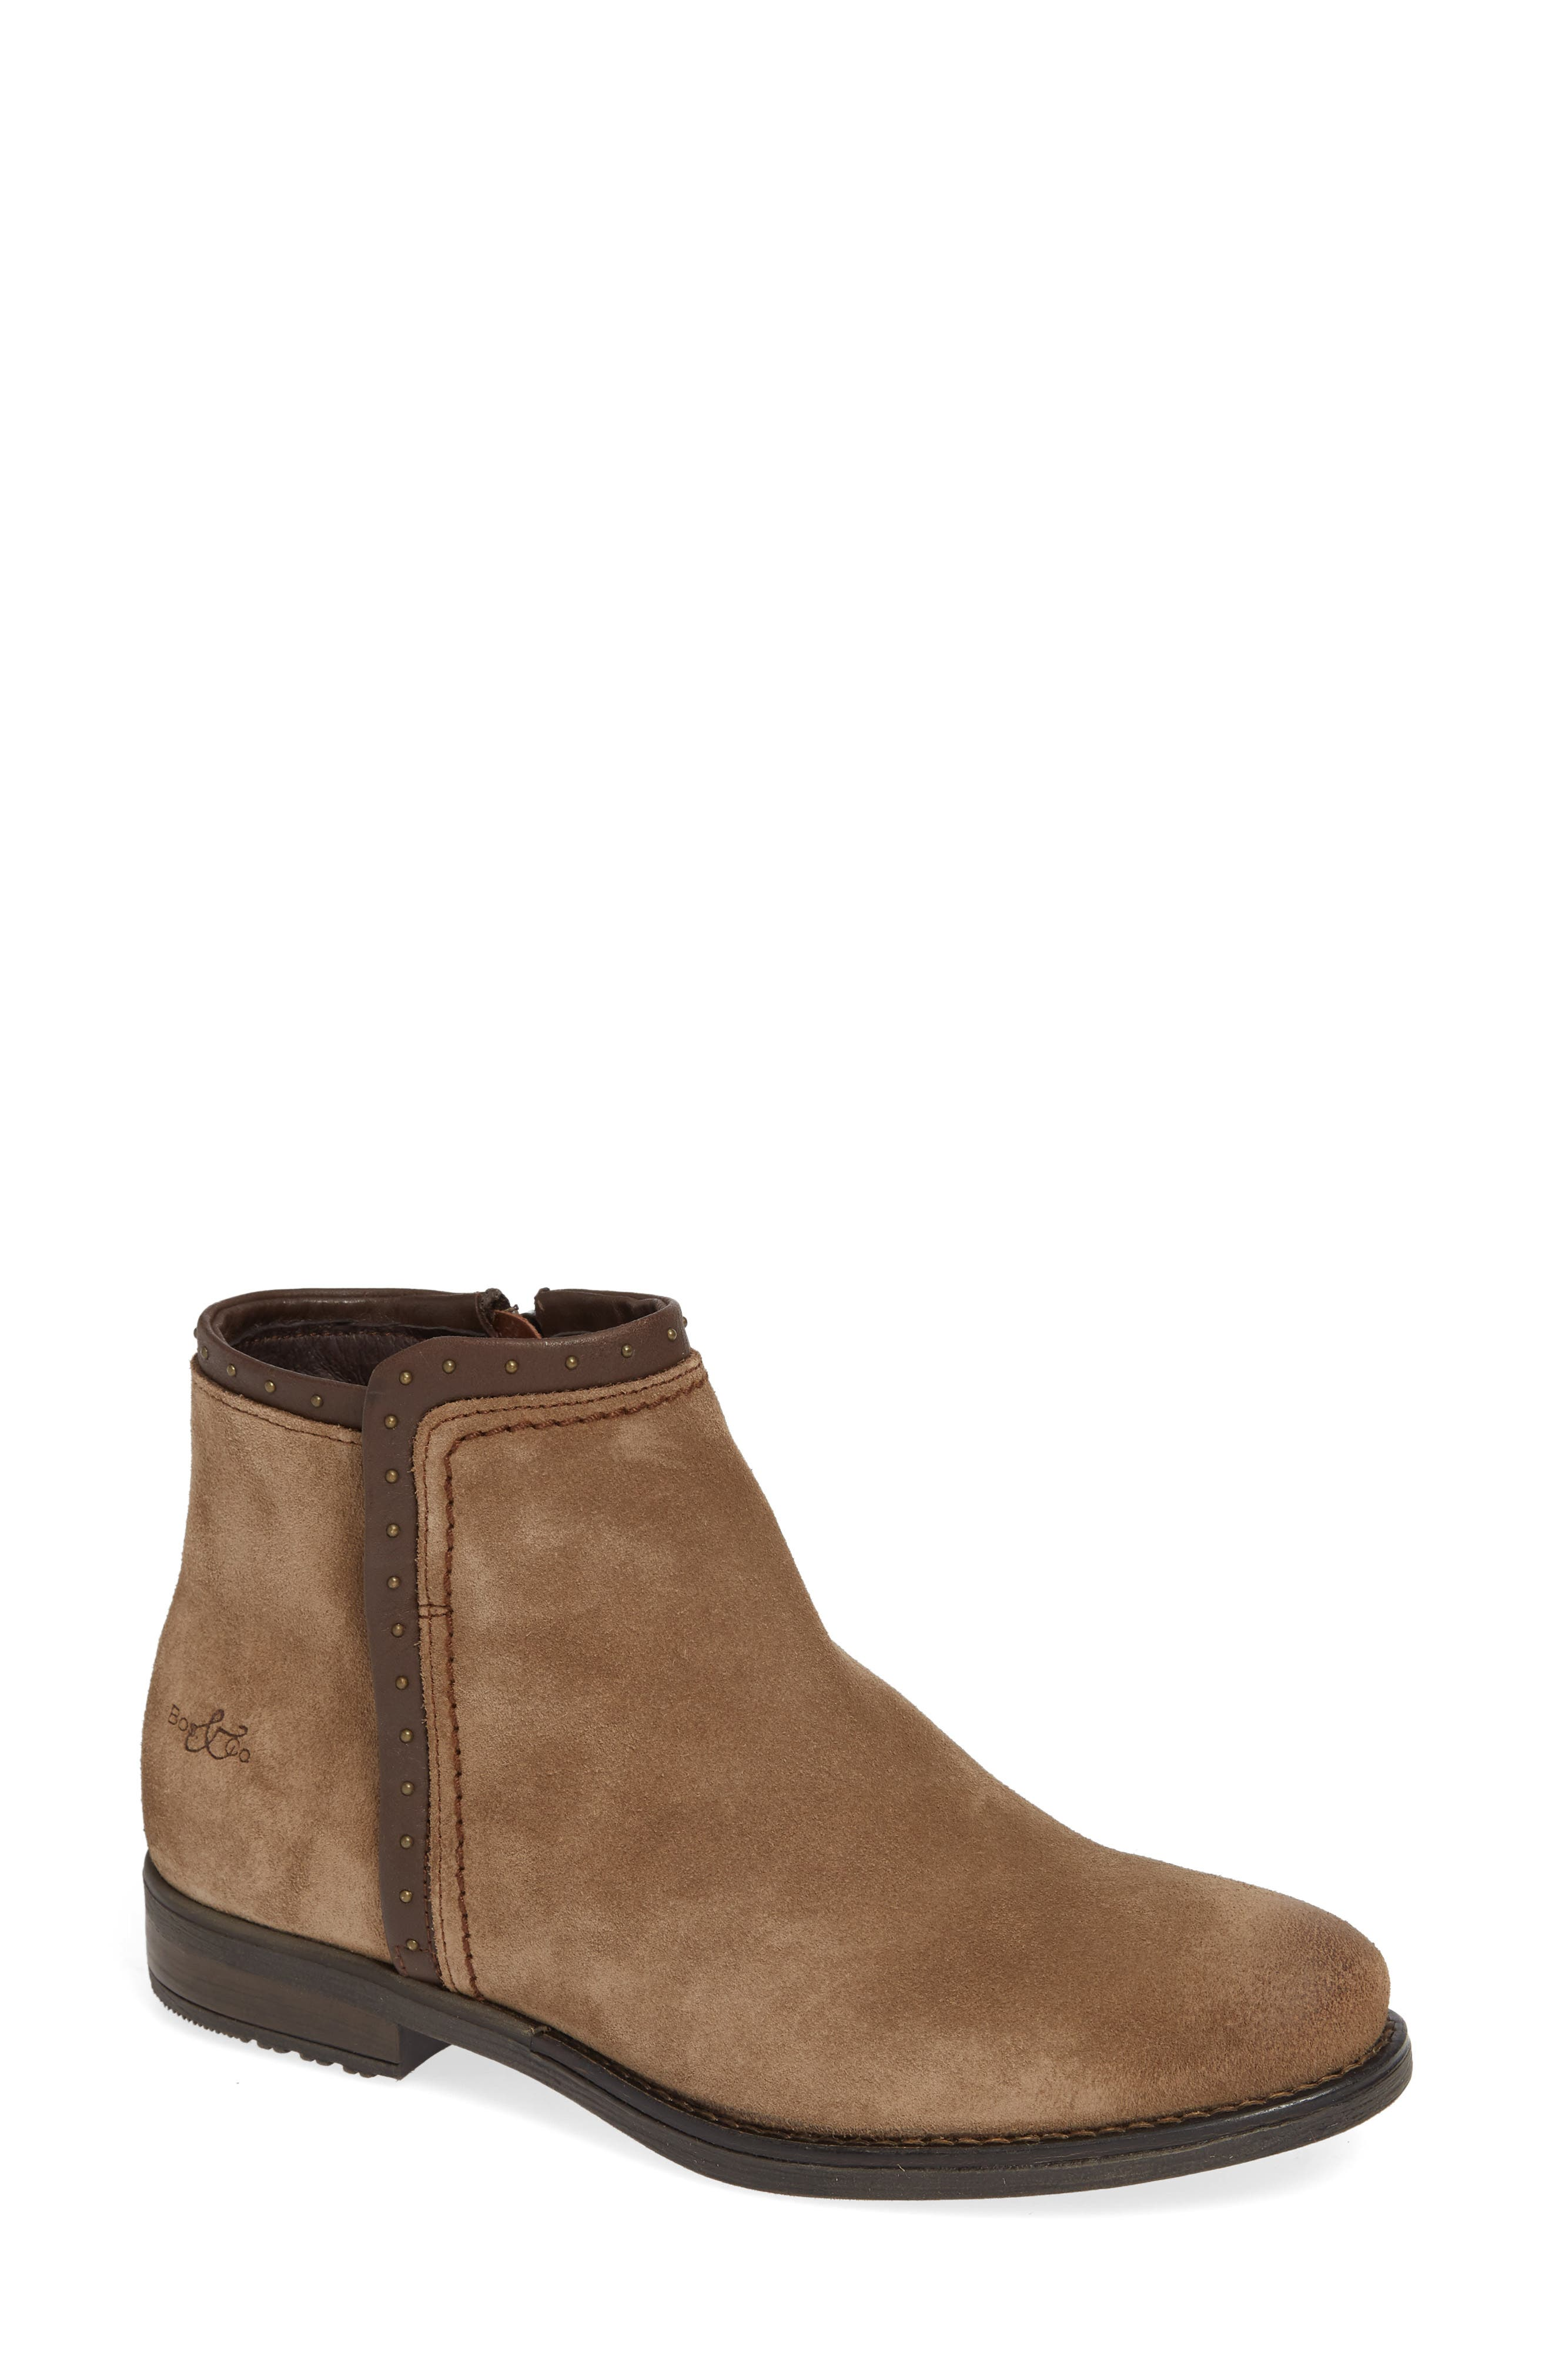 Bos. & Co. Ribos Bootie, Beige